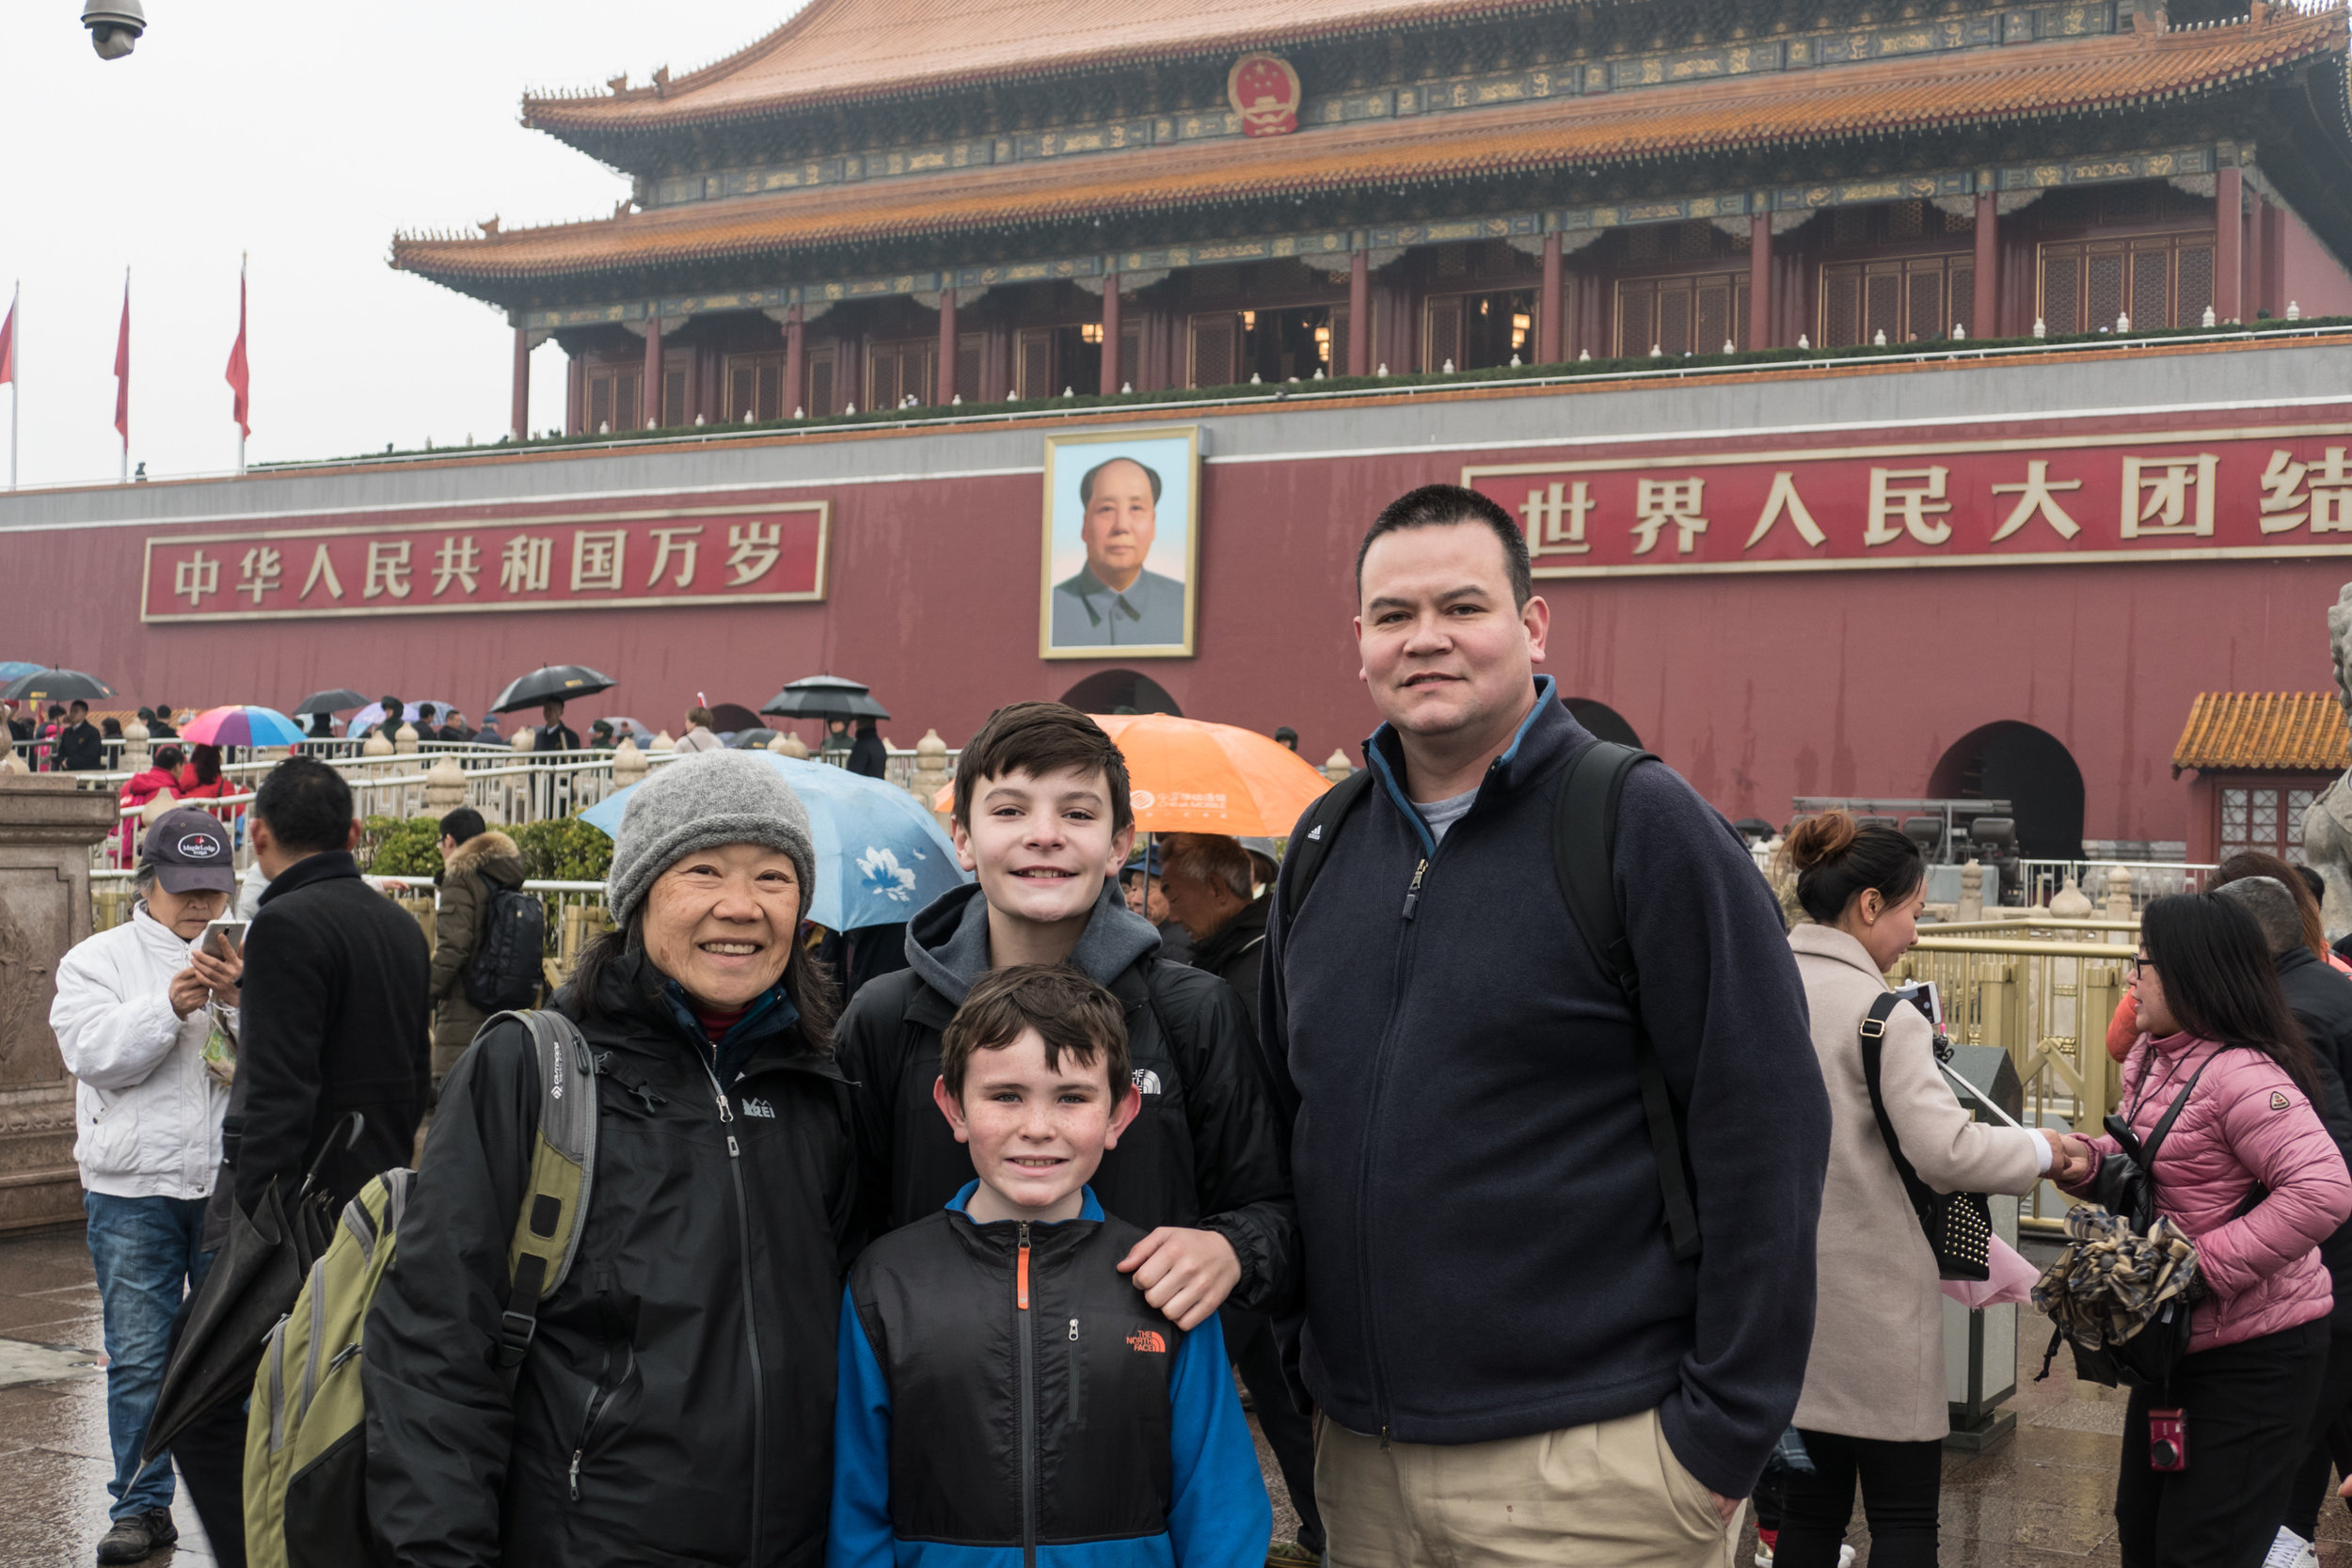 Tiananmen Square with the Great Helmsman watching